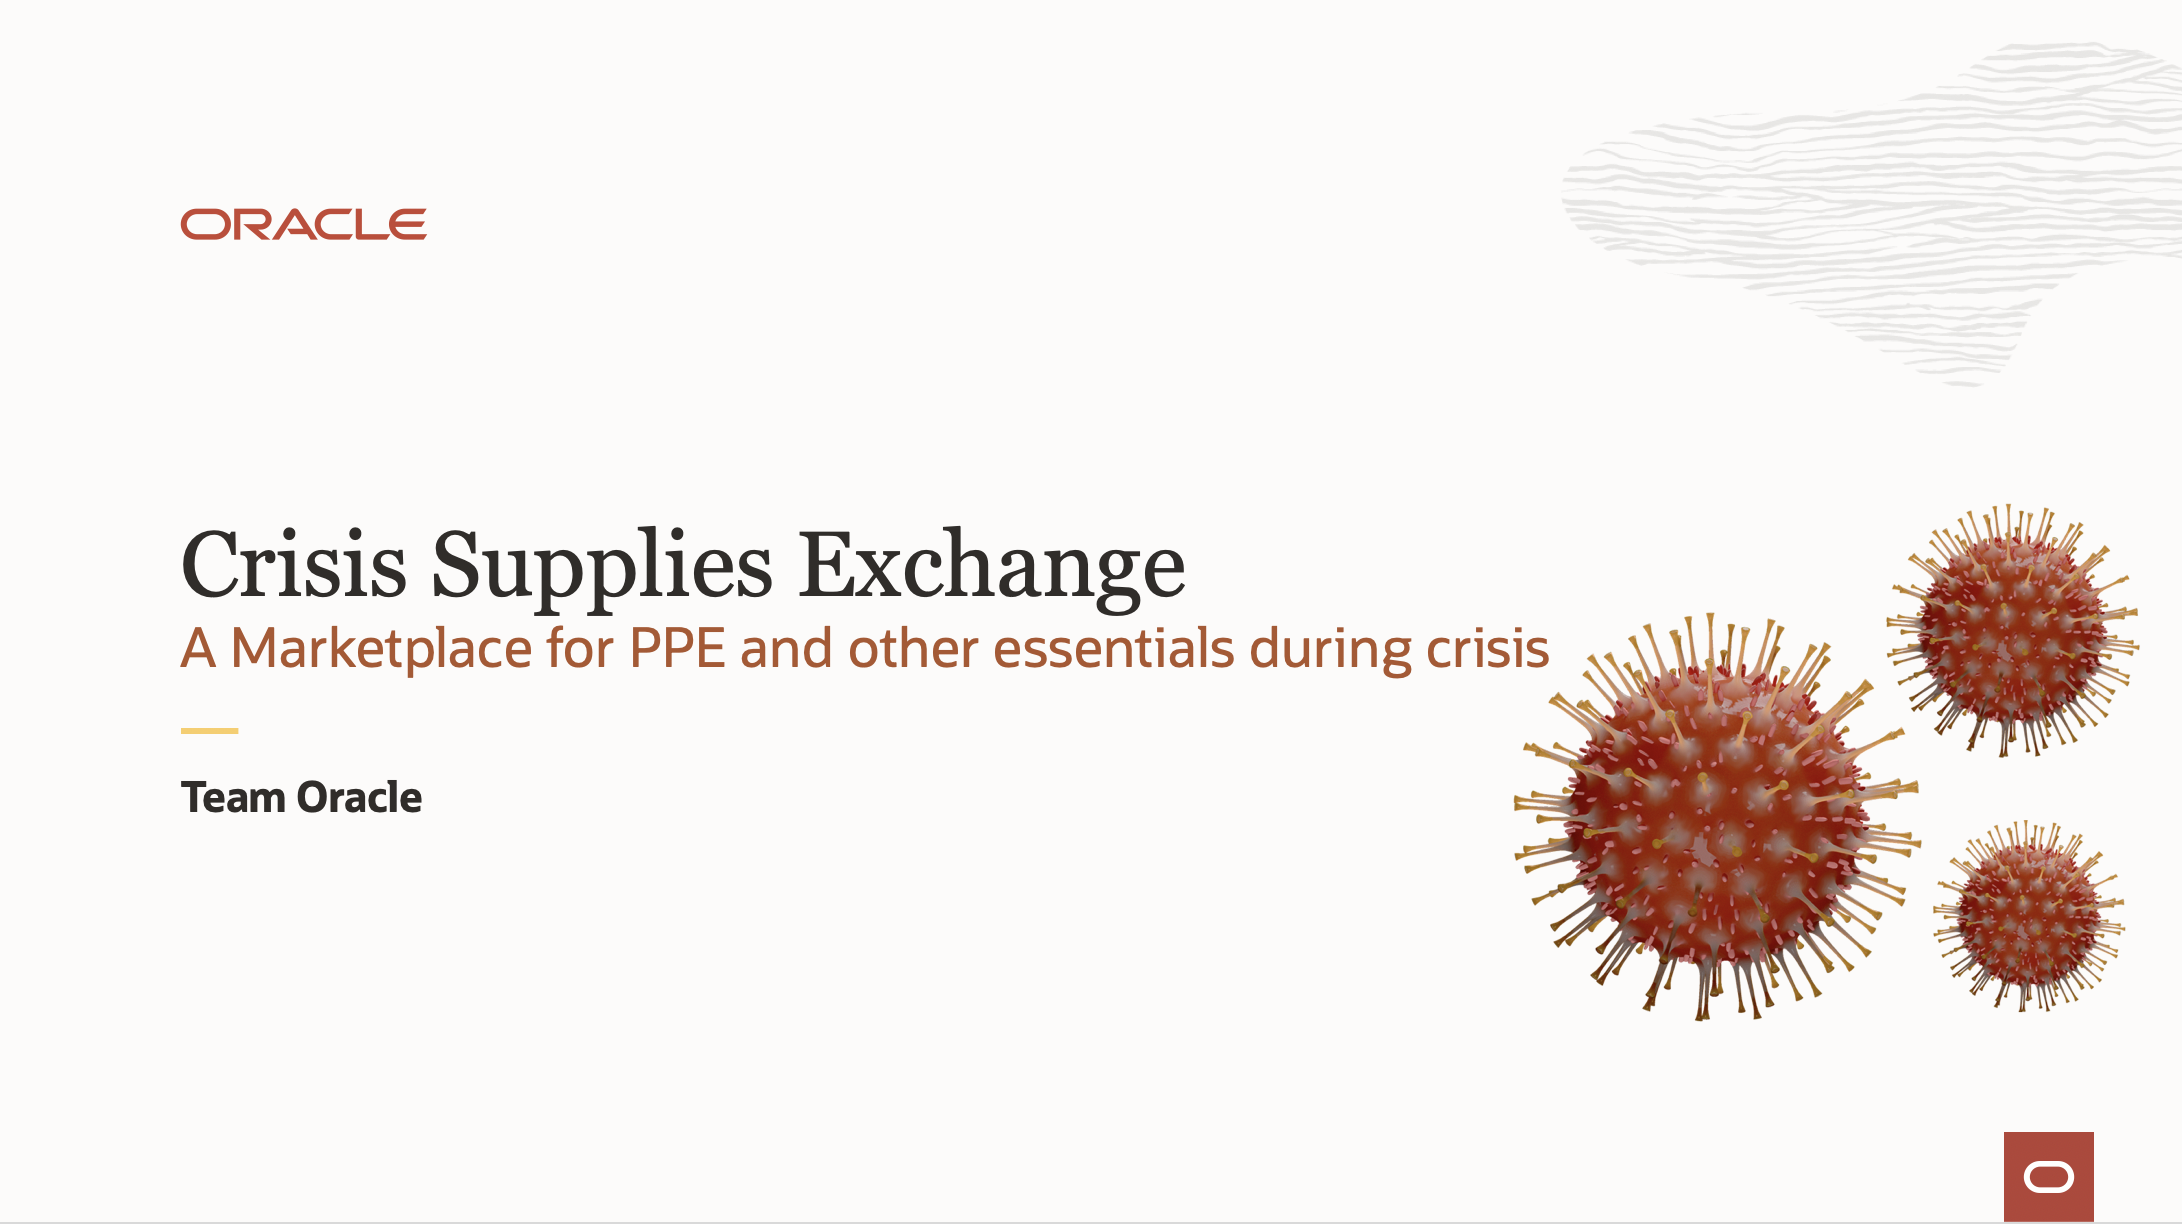 Oracle's Crisis Supplies Exchange